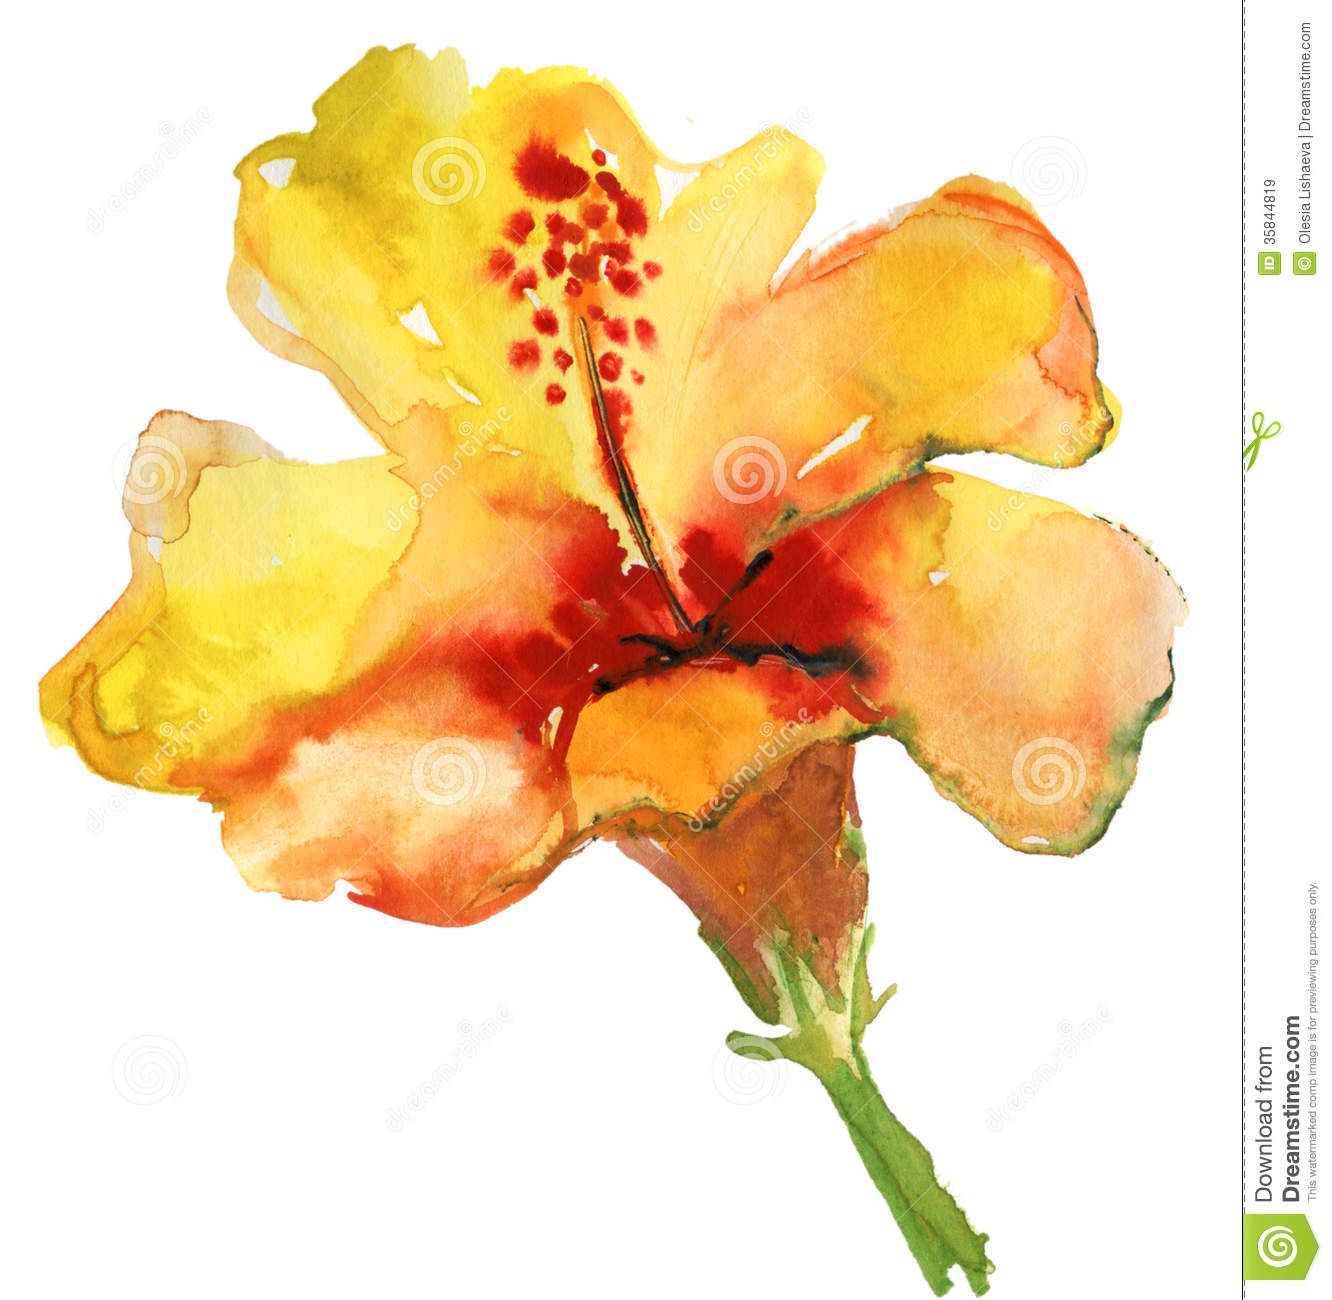 Hibiscus flower clipart image hibiscus flower - Watercolor Yellow Hibiscus Royalty Free Stock Images Image 35844819 Yellow Hibiscushibiscus Flowerstropical